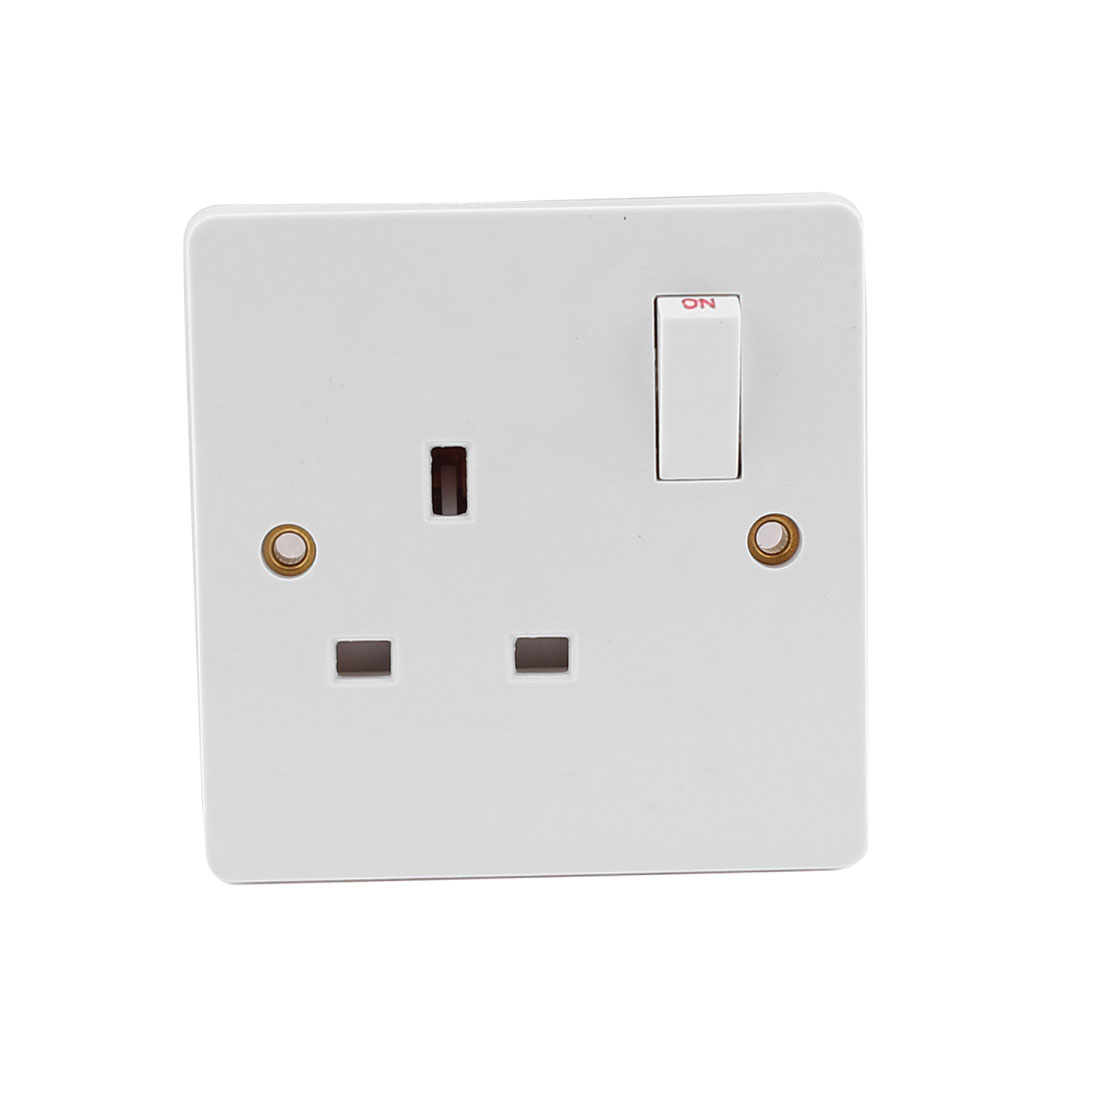 AC 250V 13A Socket Mains Power Wall Plate Panel Switch Outlet